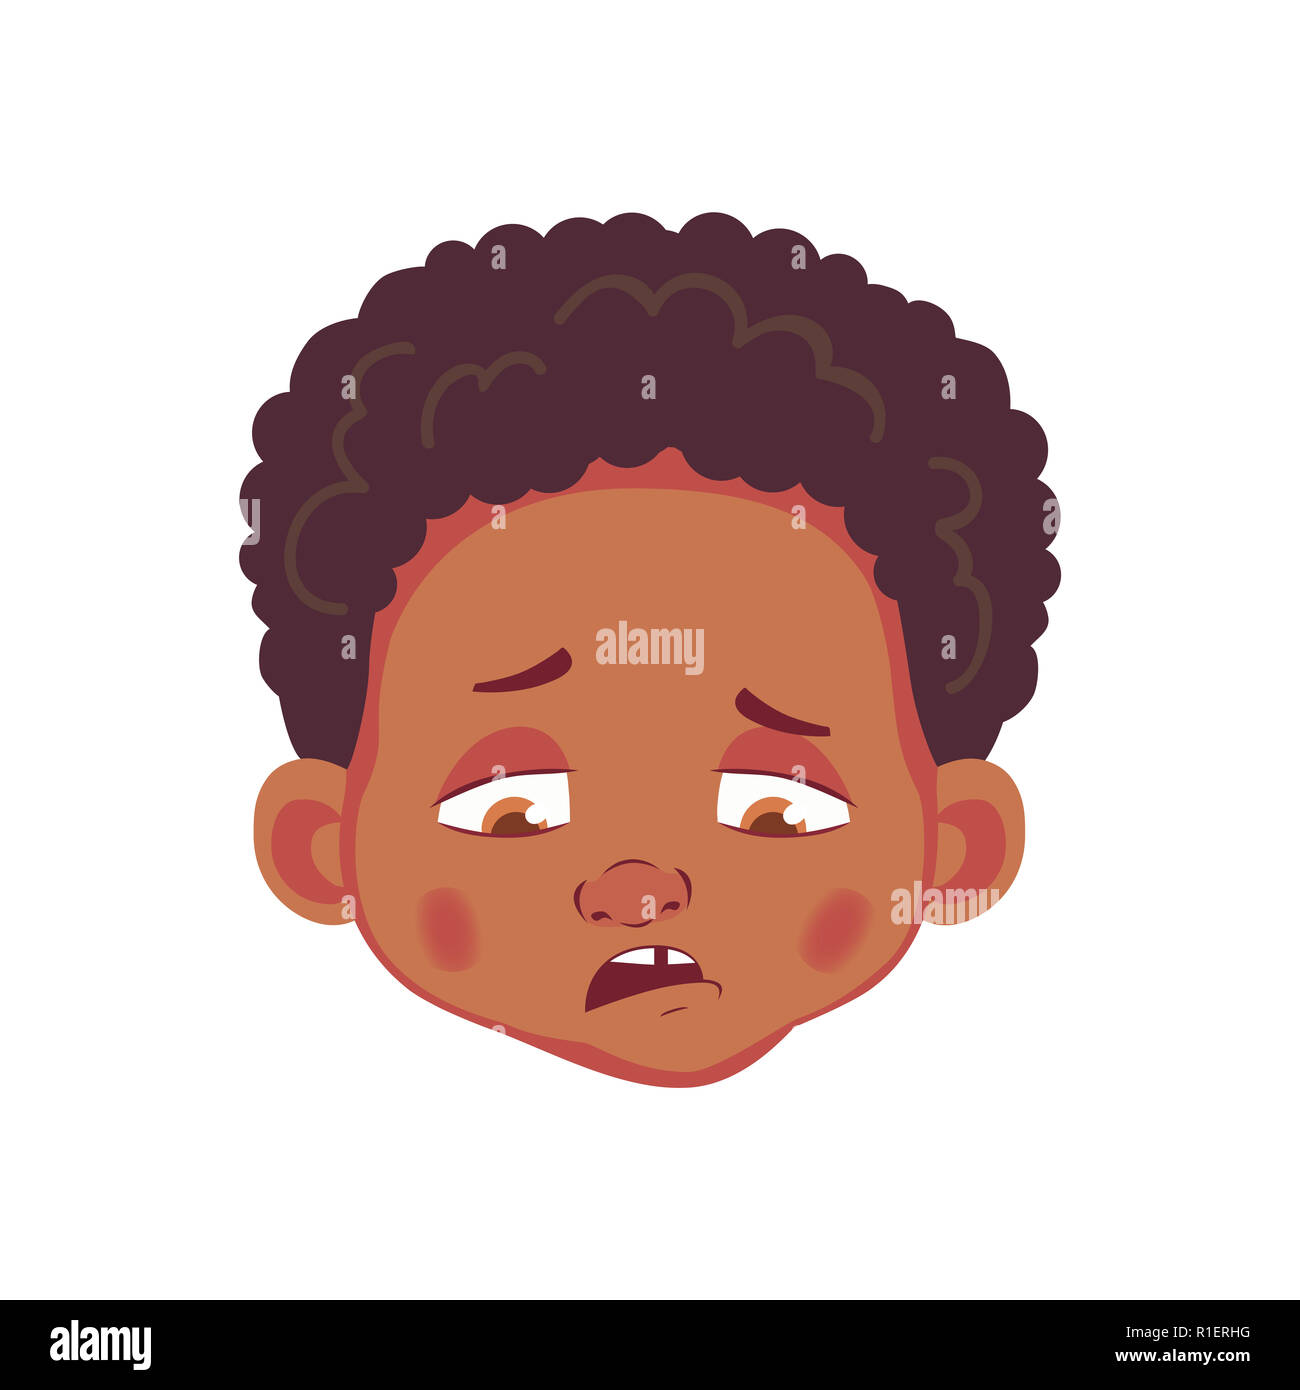 Face of african boy emotions of african american boy facial expression face illustration